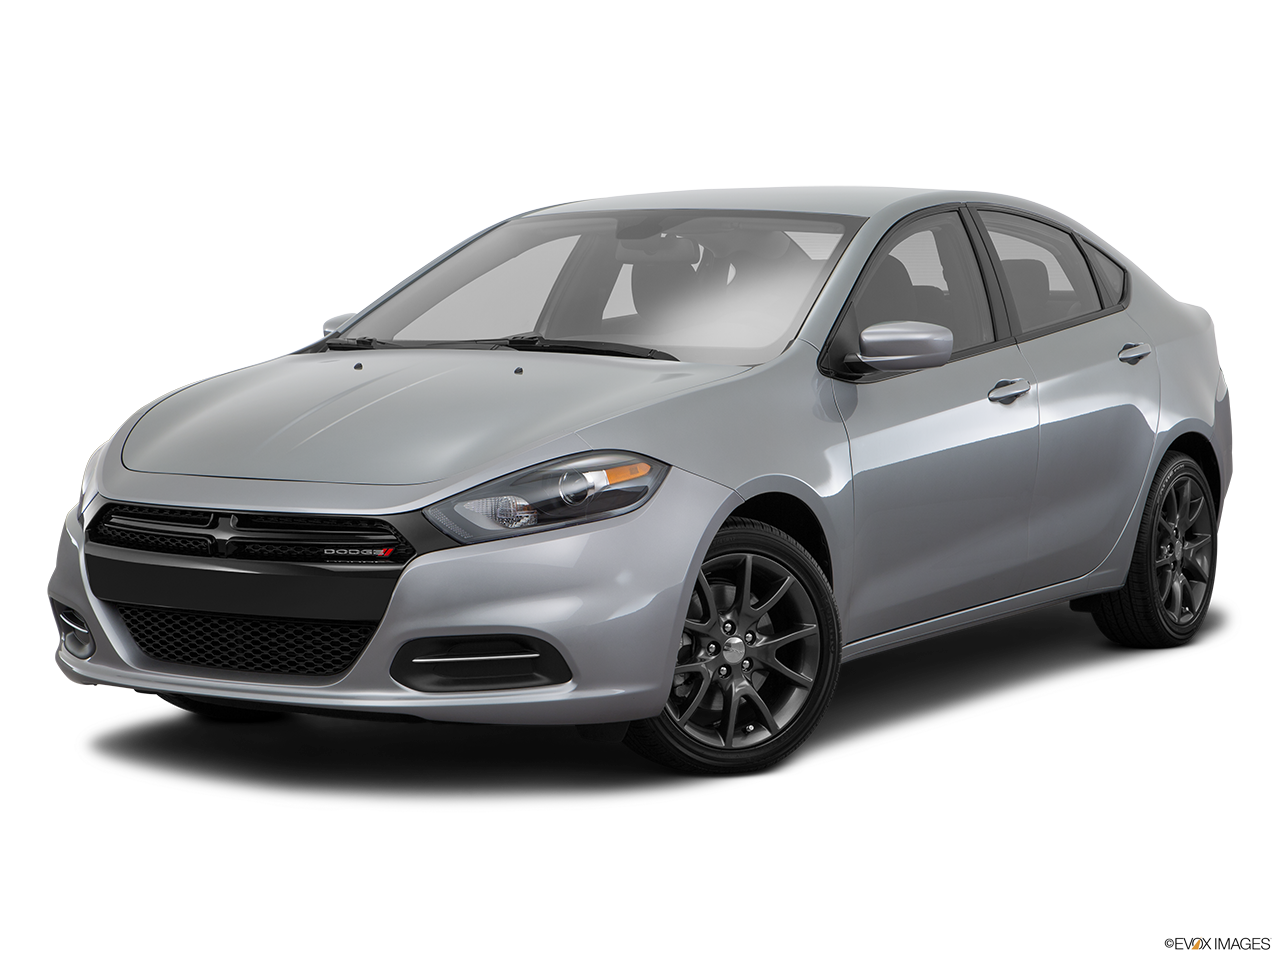 Test Drive A 2016 Dodge Dart at Arrigo Dodge Chrysler Jeep Ram Ft. Pierce in Fort Pierce